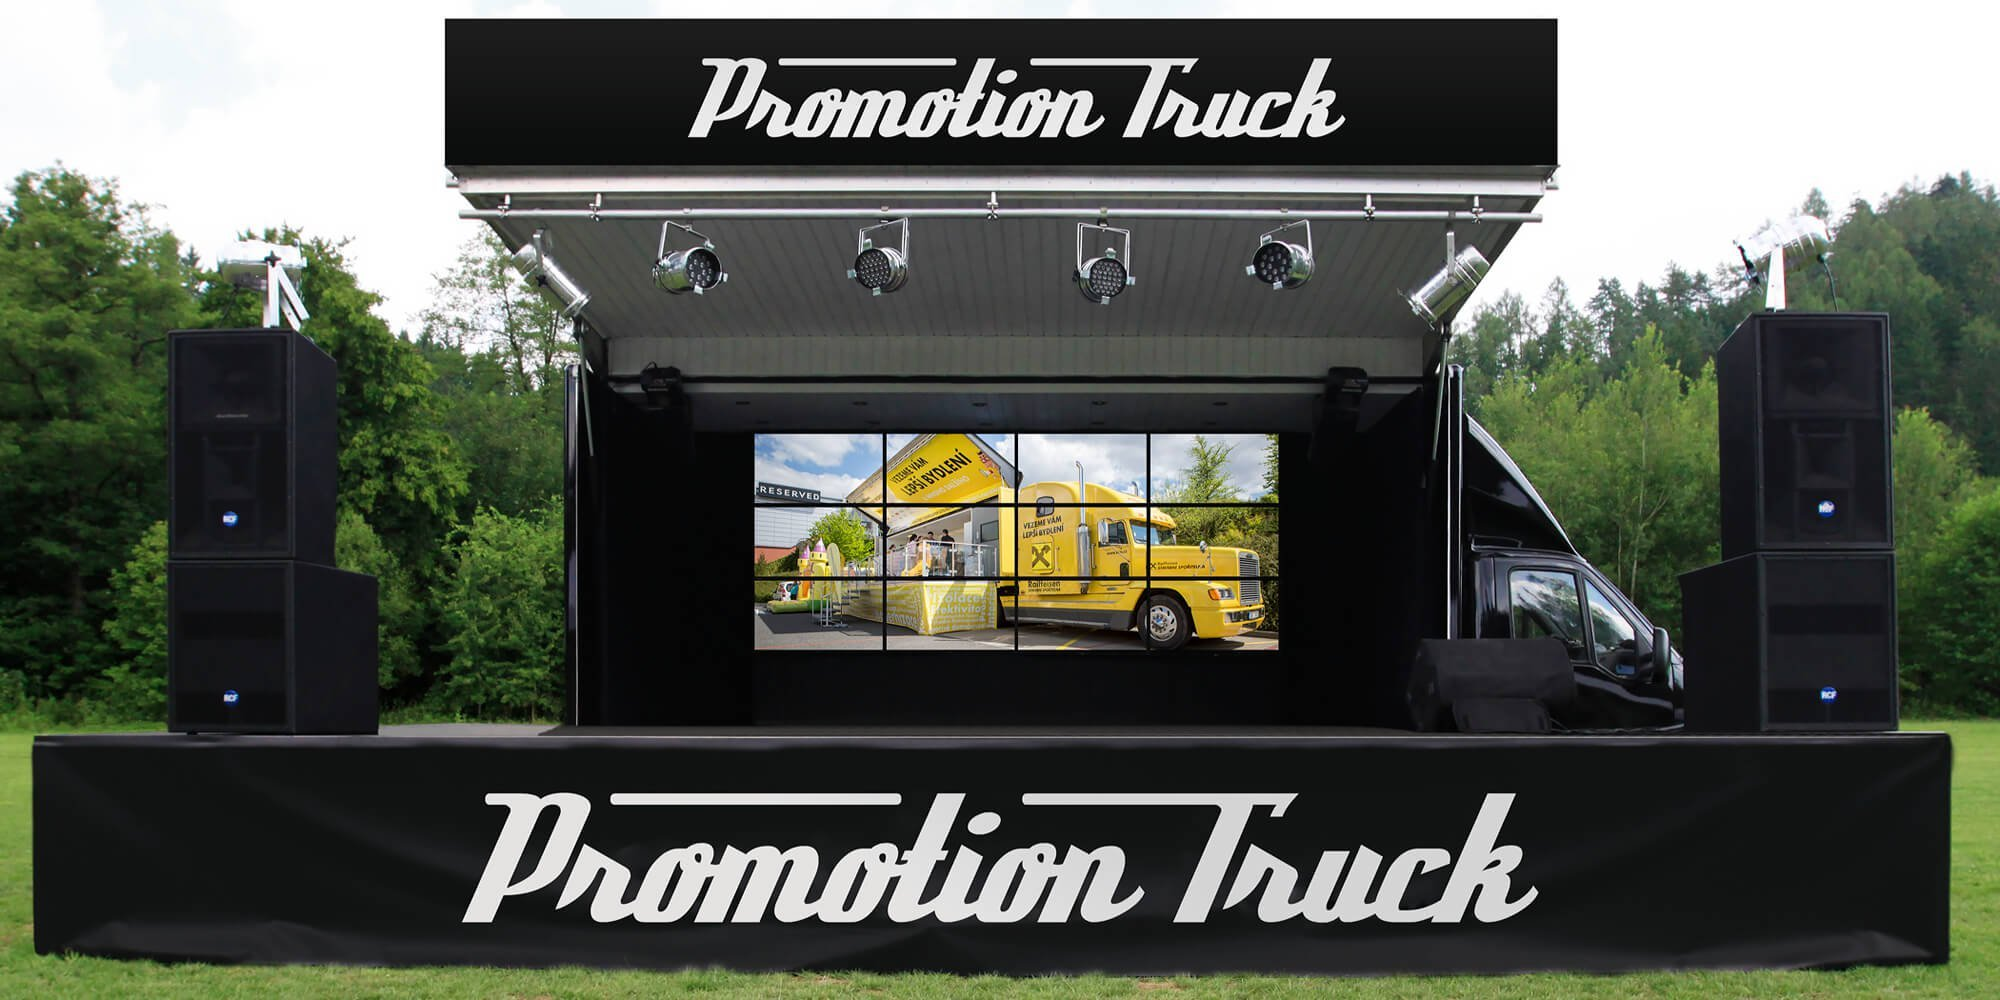 Promotion Wagon